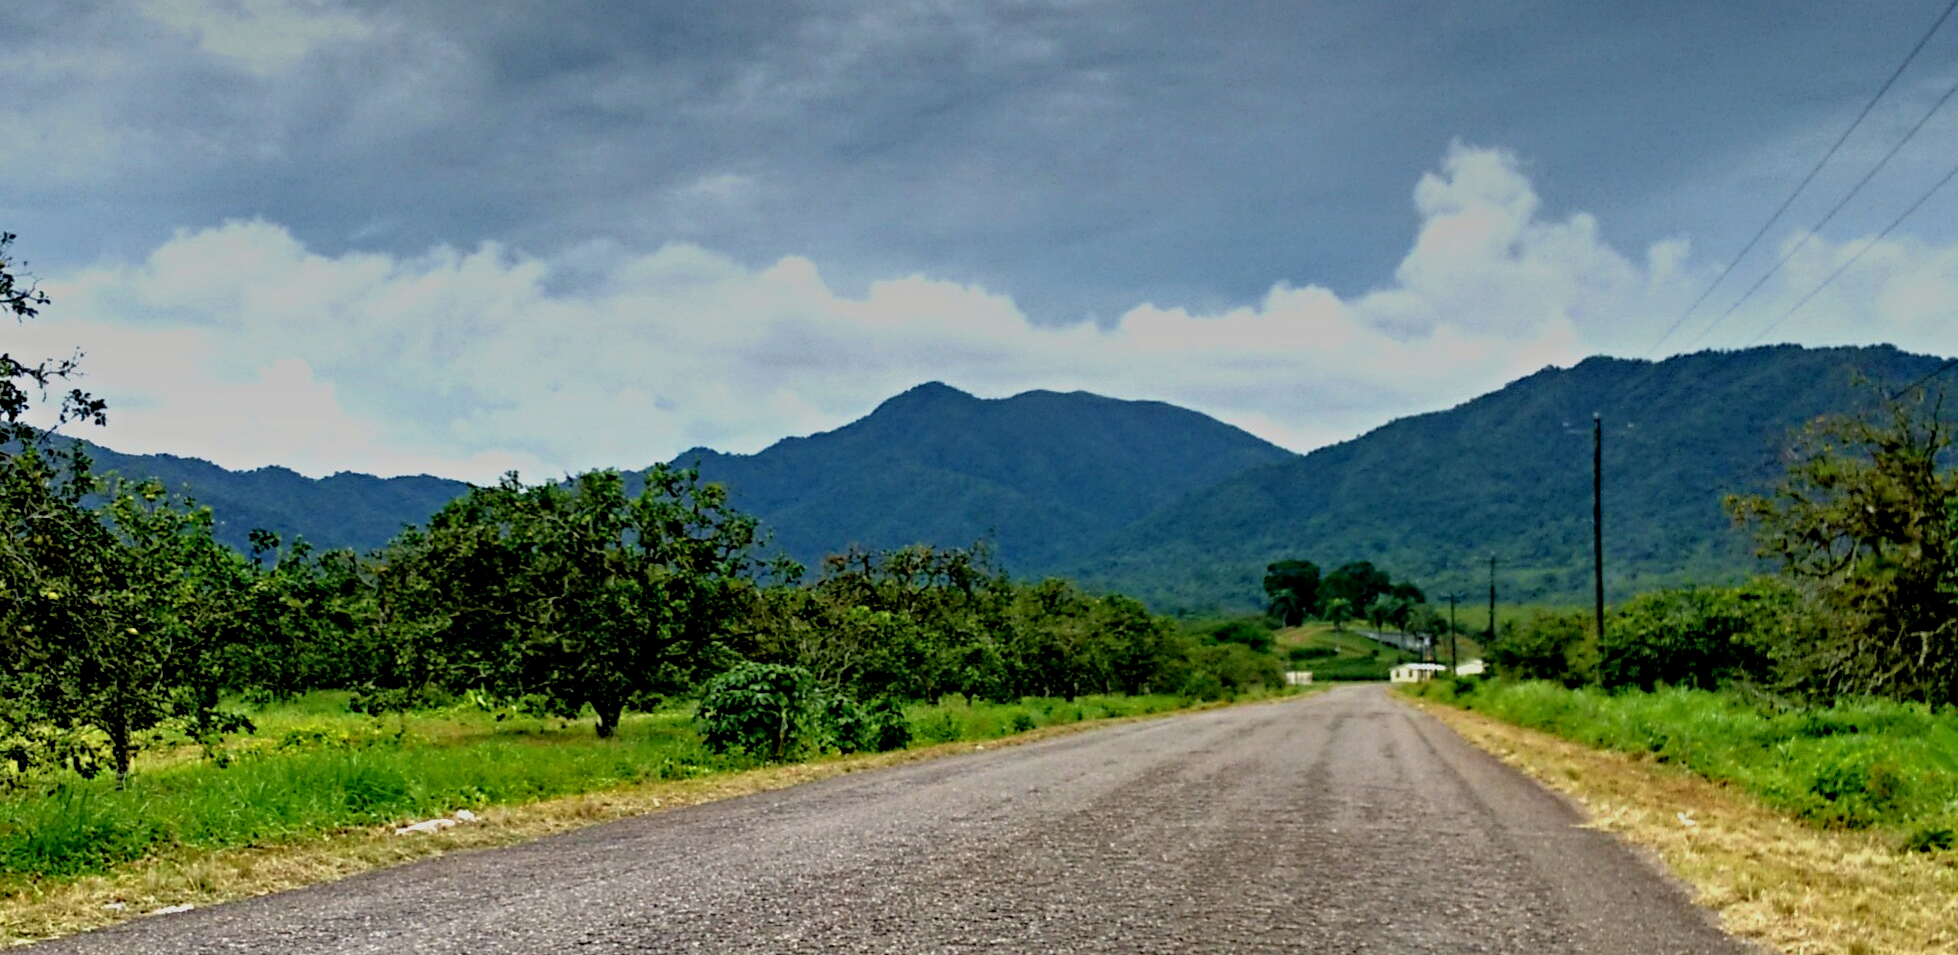 Belize's picturesque Hummingbird Highway leads through the mountains from Belmopan towards the southeast to Dangriga and the Southern Highway